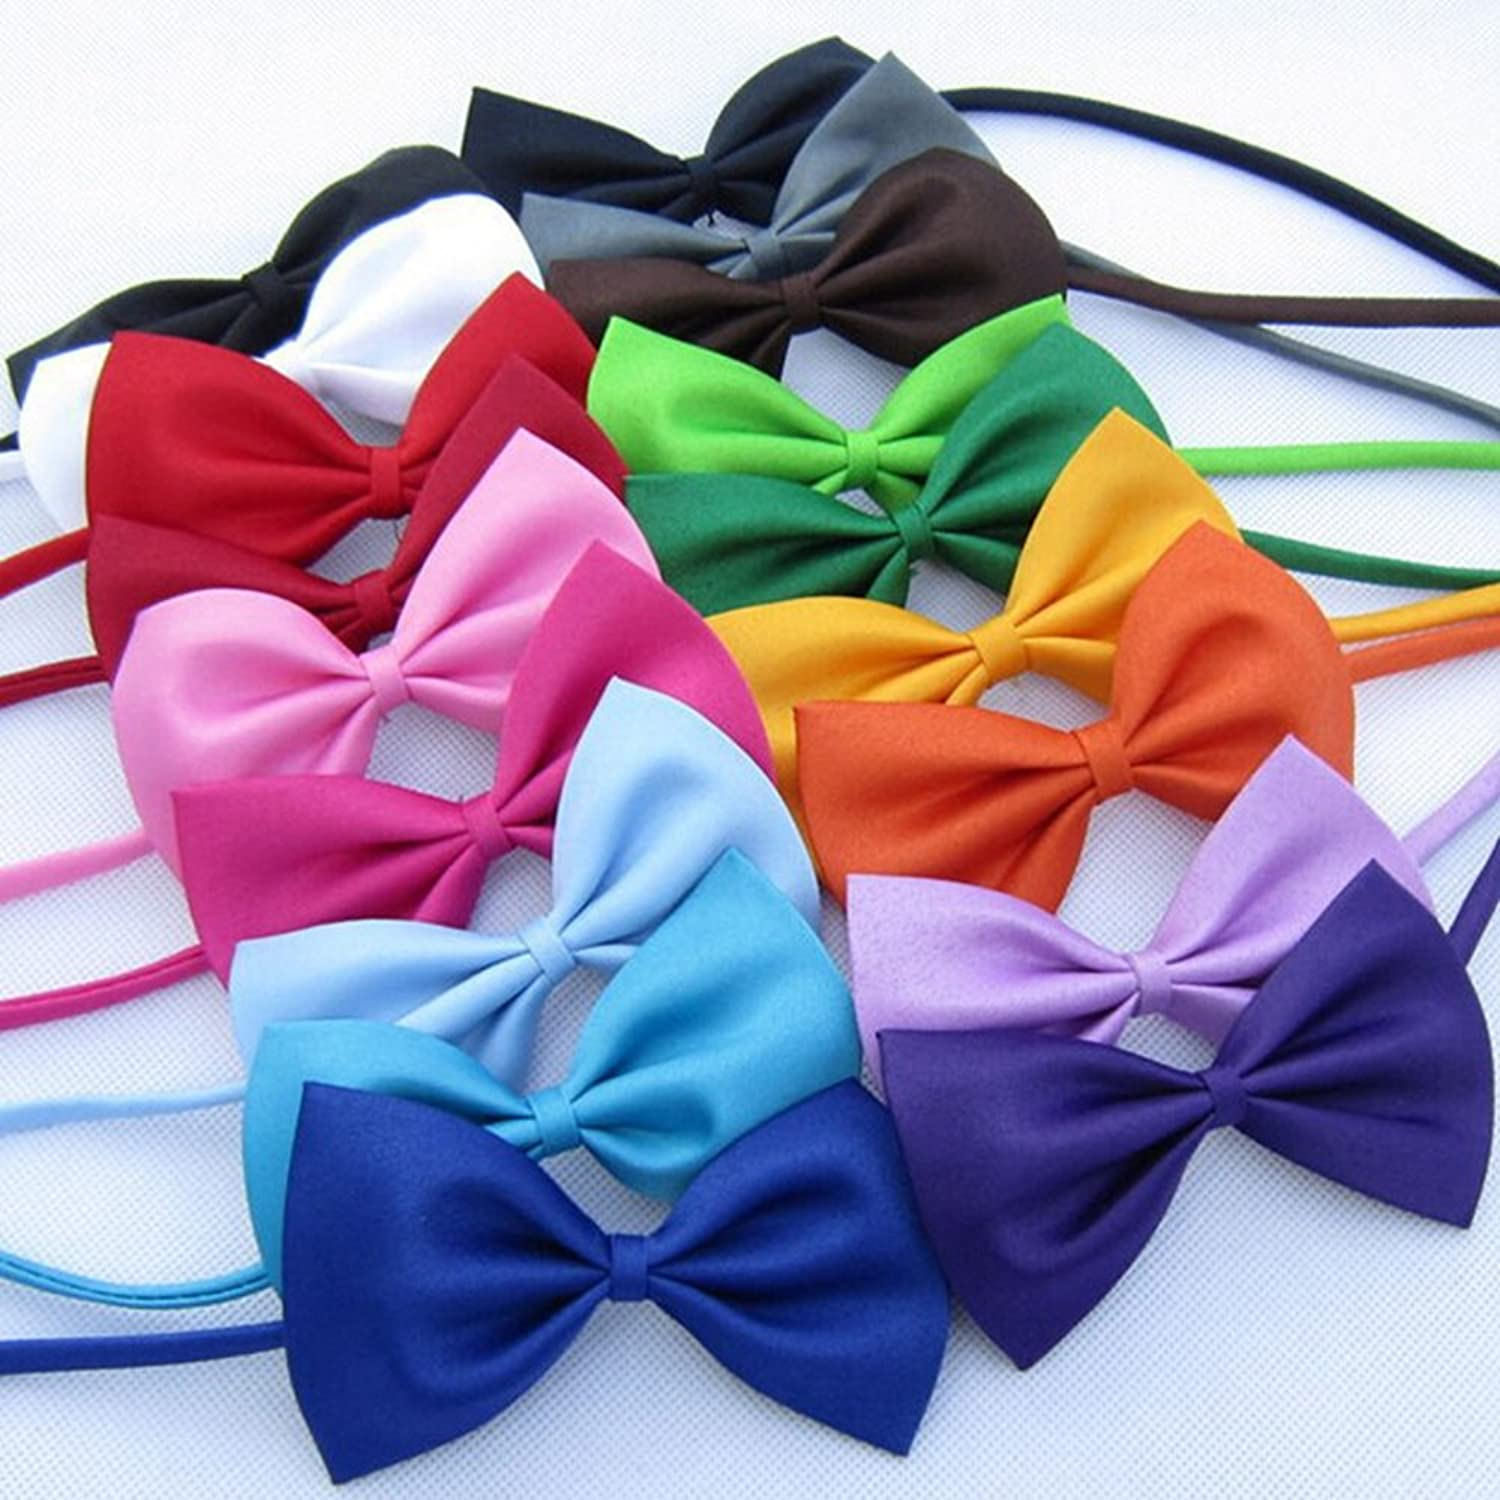 Mix colors Wholesale 100pcs lot Pet Grooming Accessories Rabbit Cat Dog Bow Tie Adjustable Bowtie Multicolor Polyester & Cotton